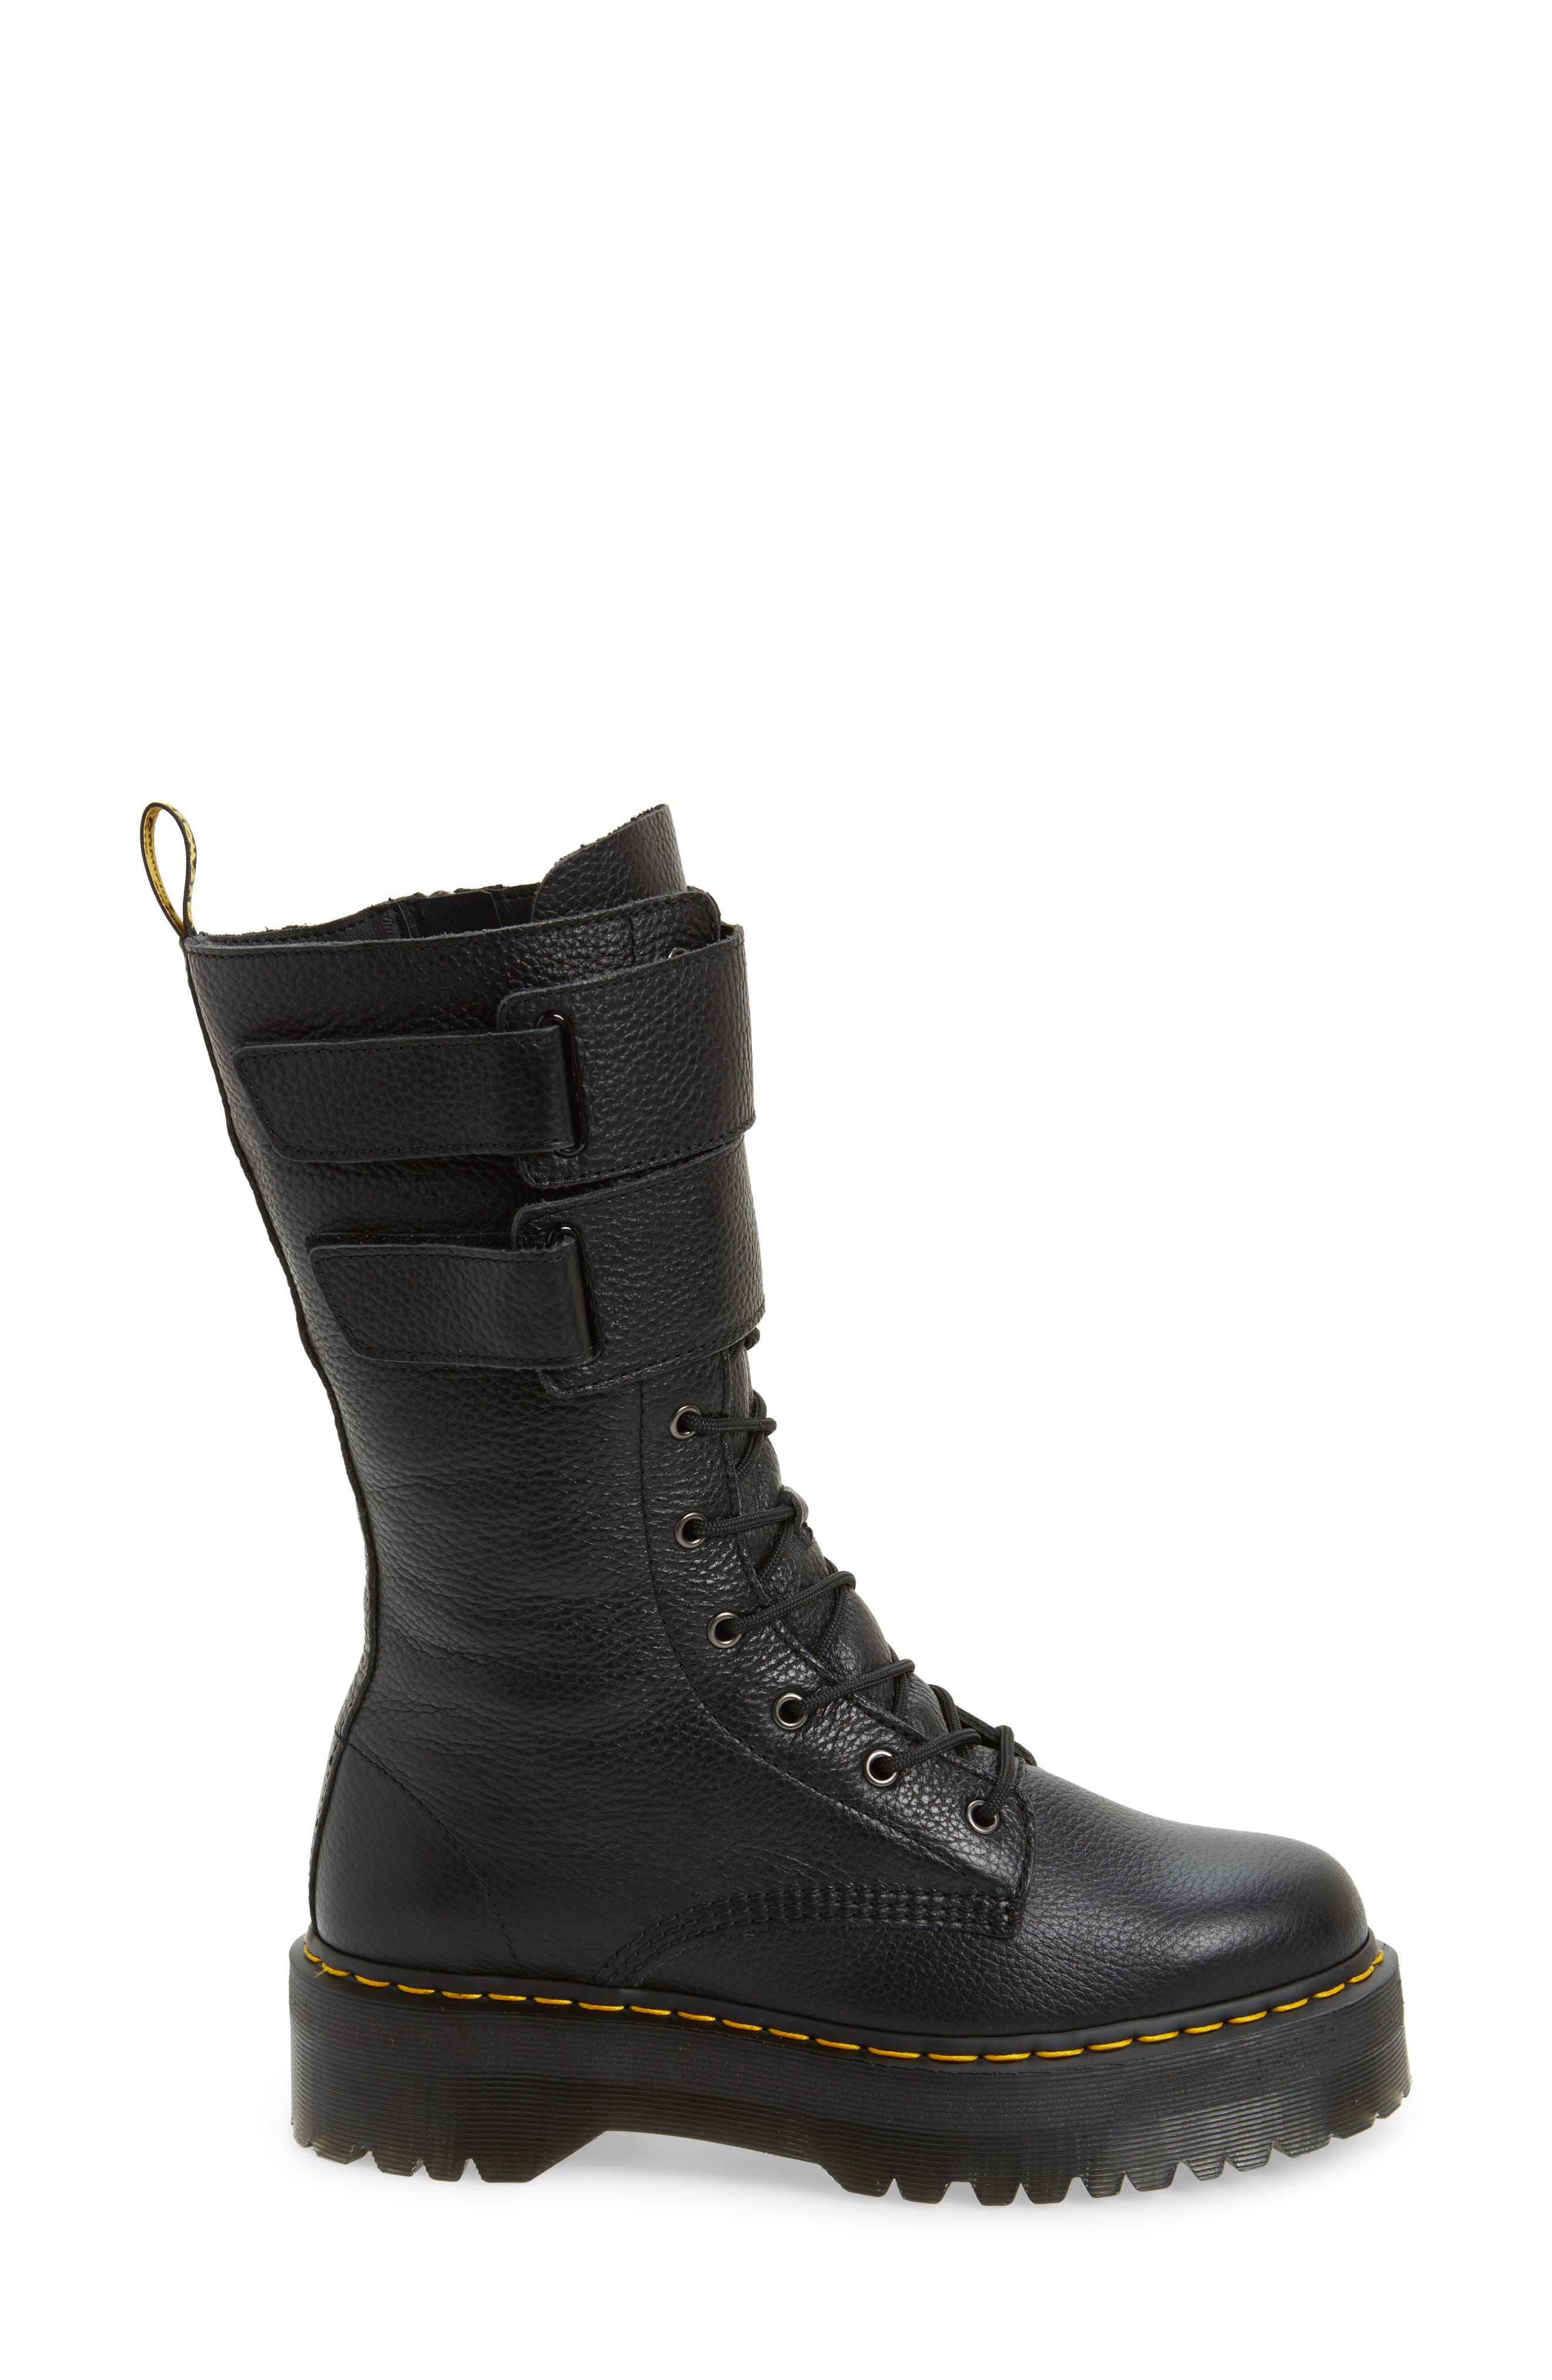 Jagger Combat Boot,                             Alternate thumbnail 3, color,                             Black Leather